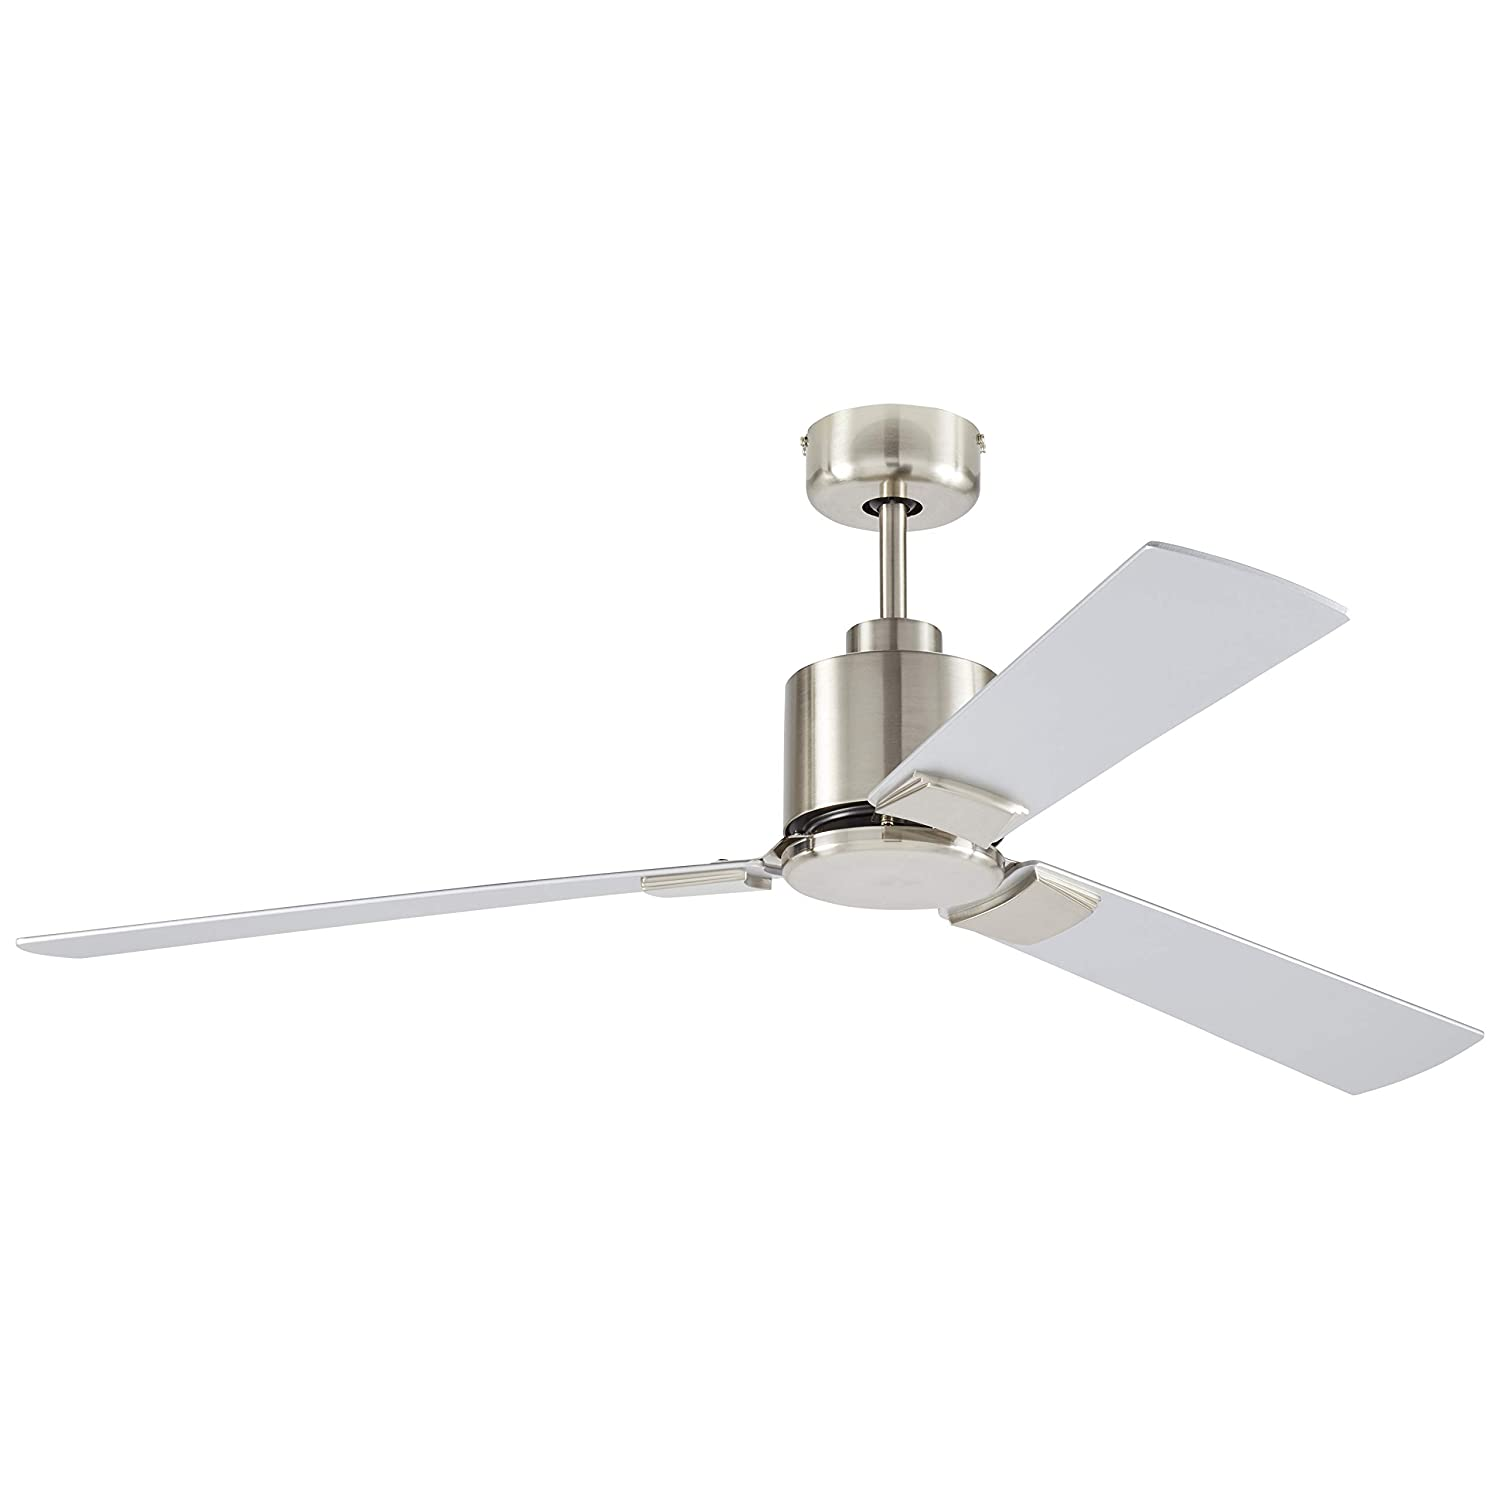 Rivet Modern Cylindrical 3 Blade Flush Mount Ceiling Fan – 43 x 43 x 12.5 Inches, Brushed Nickel